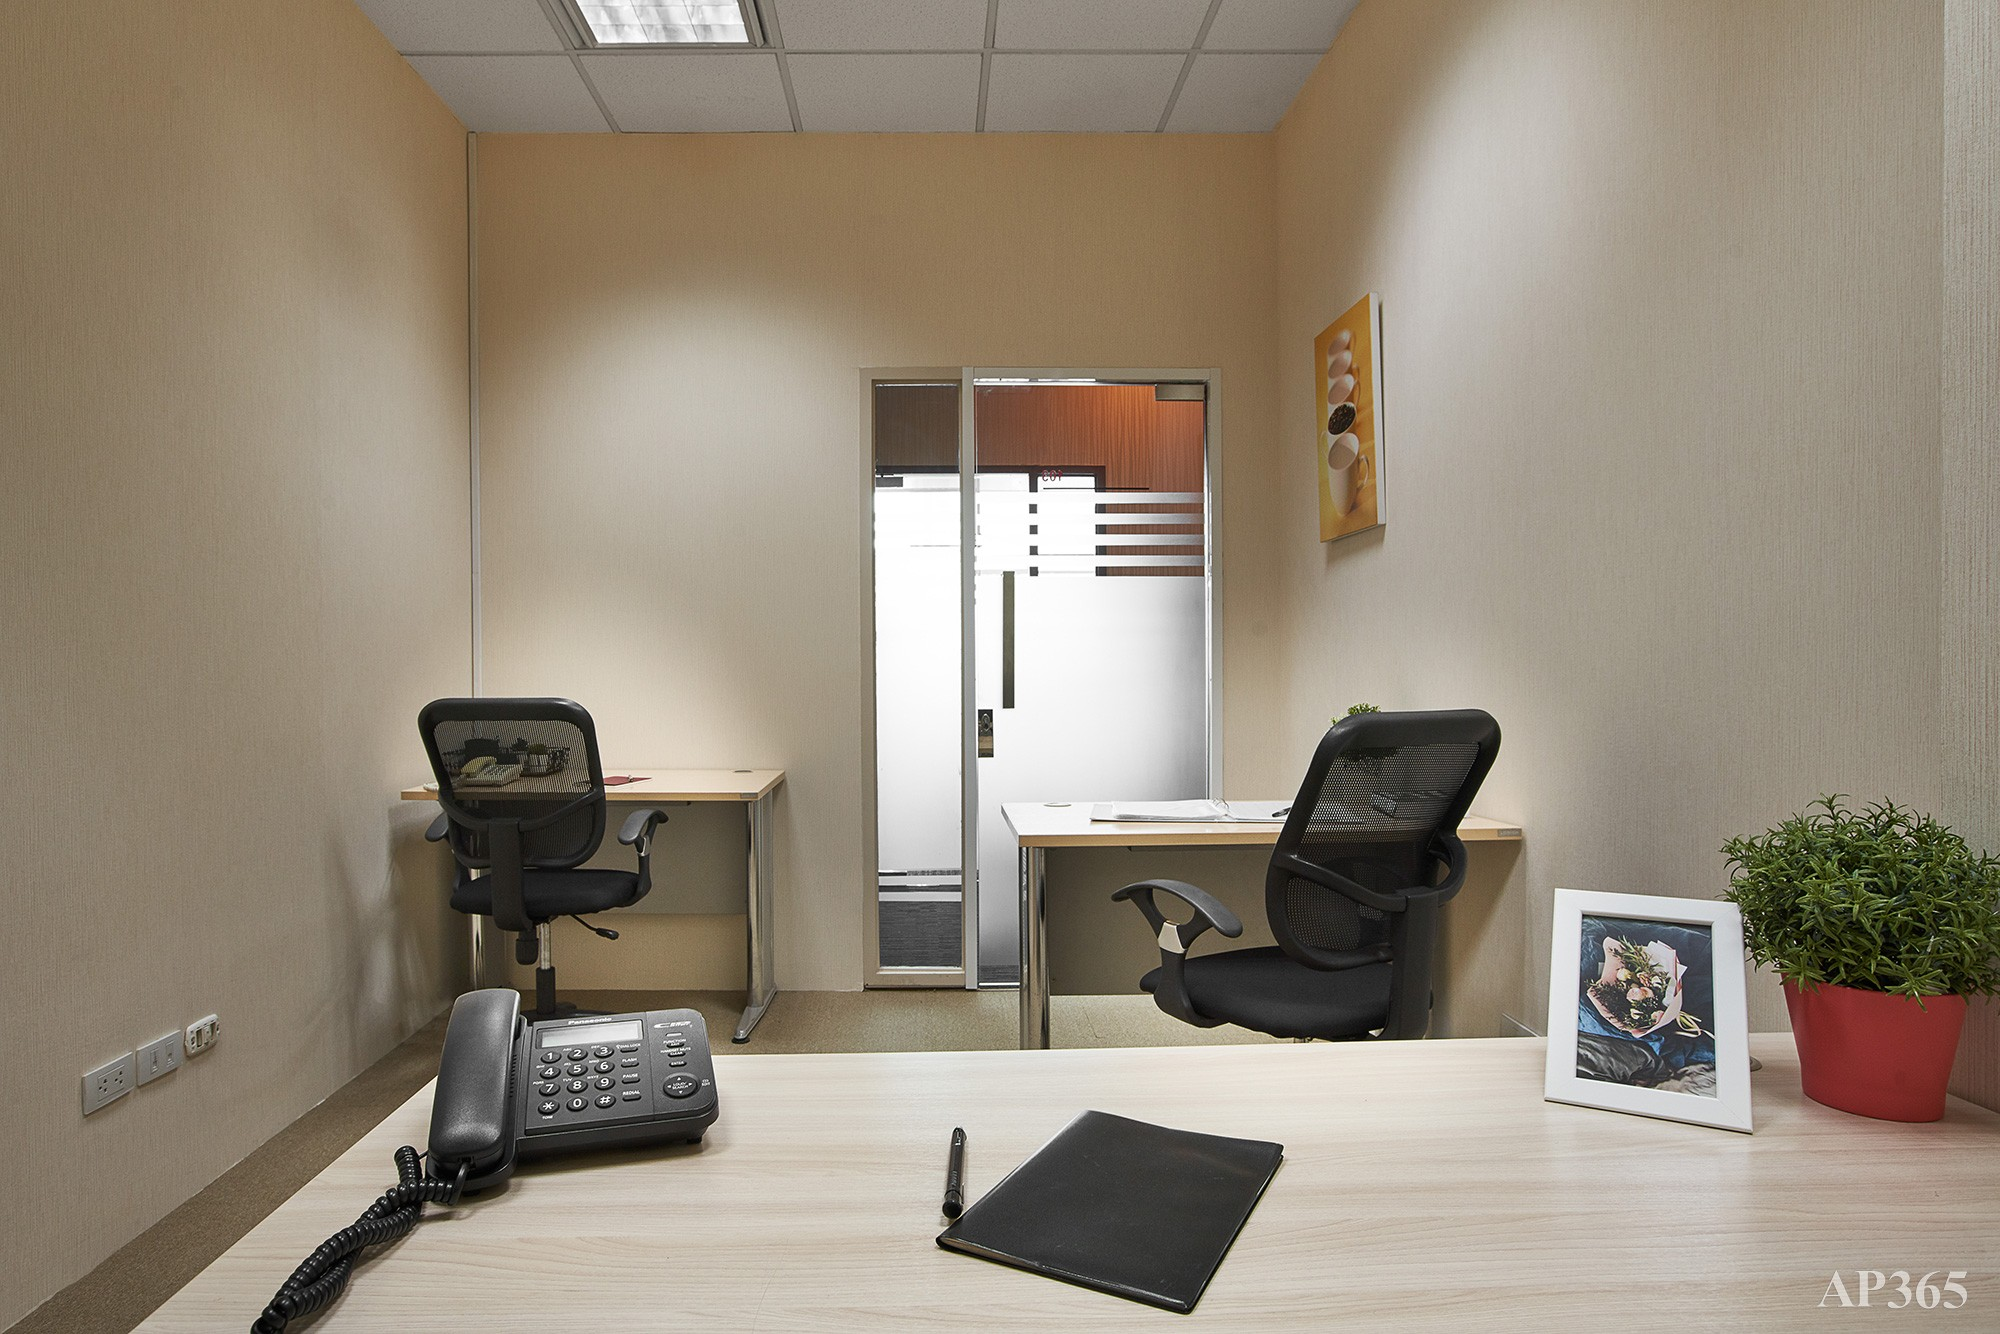 Linuxx Serviced Office - Asia Centre Building 17th Fl. (Room 103) - 4